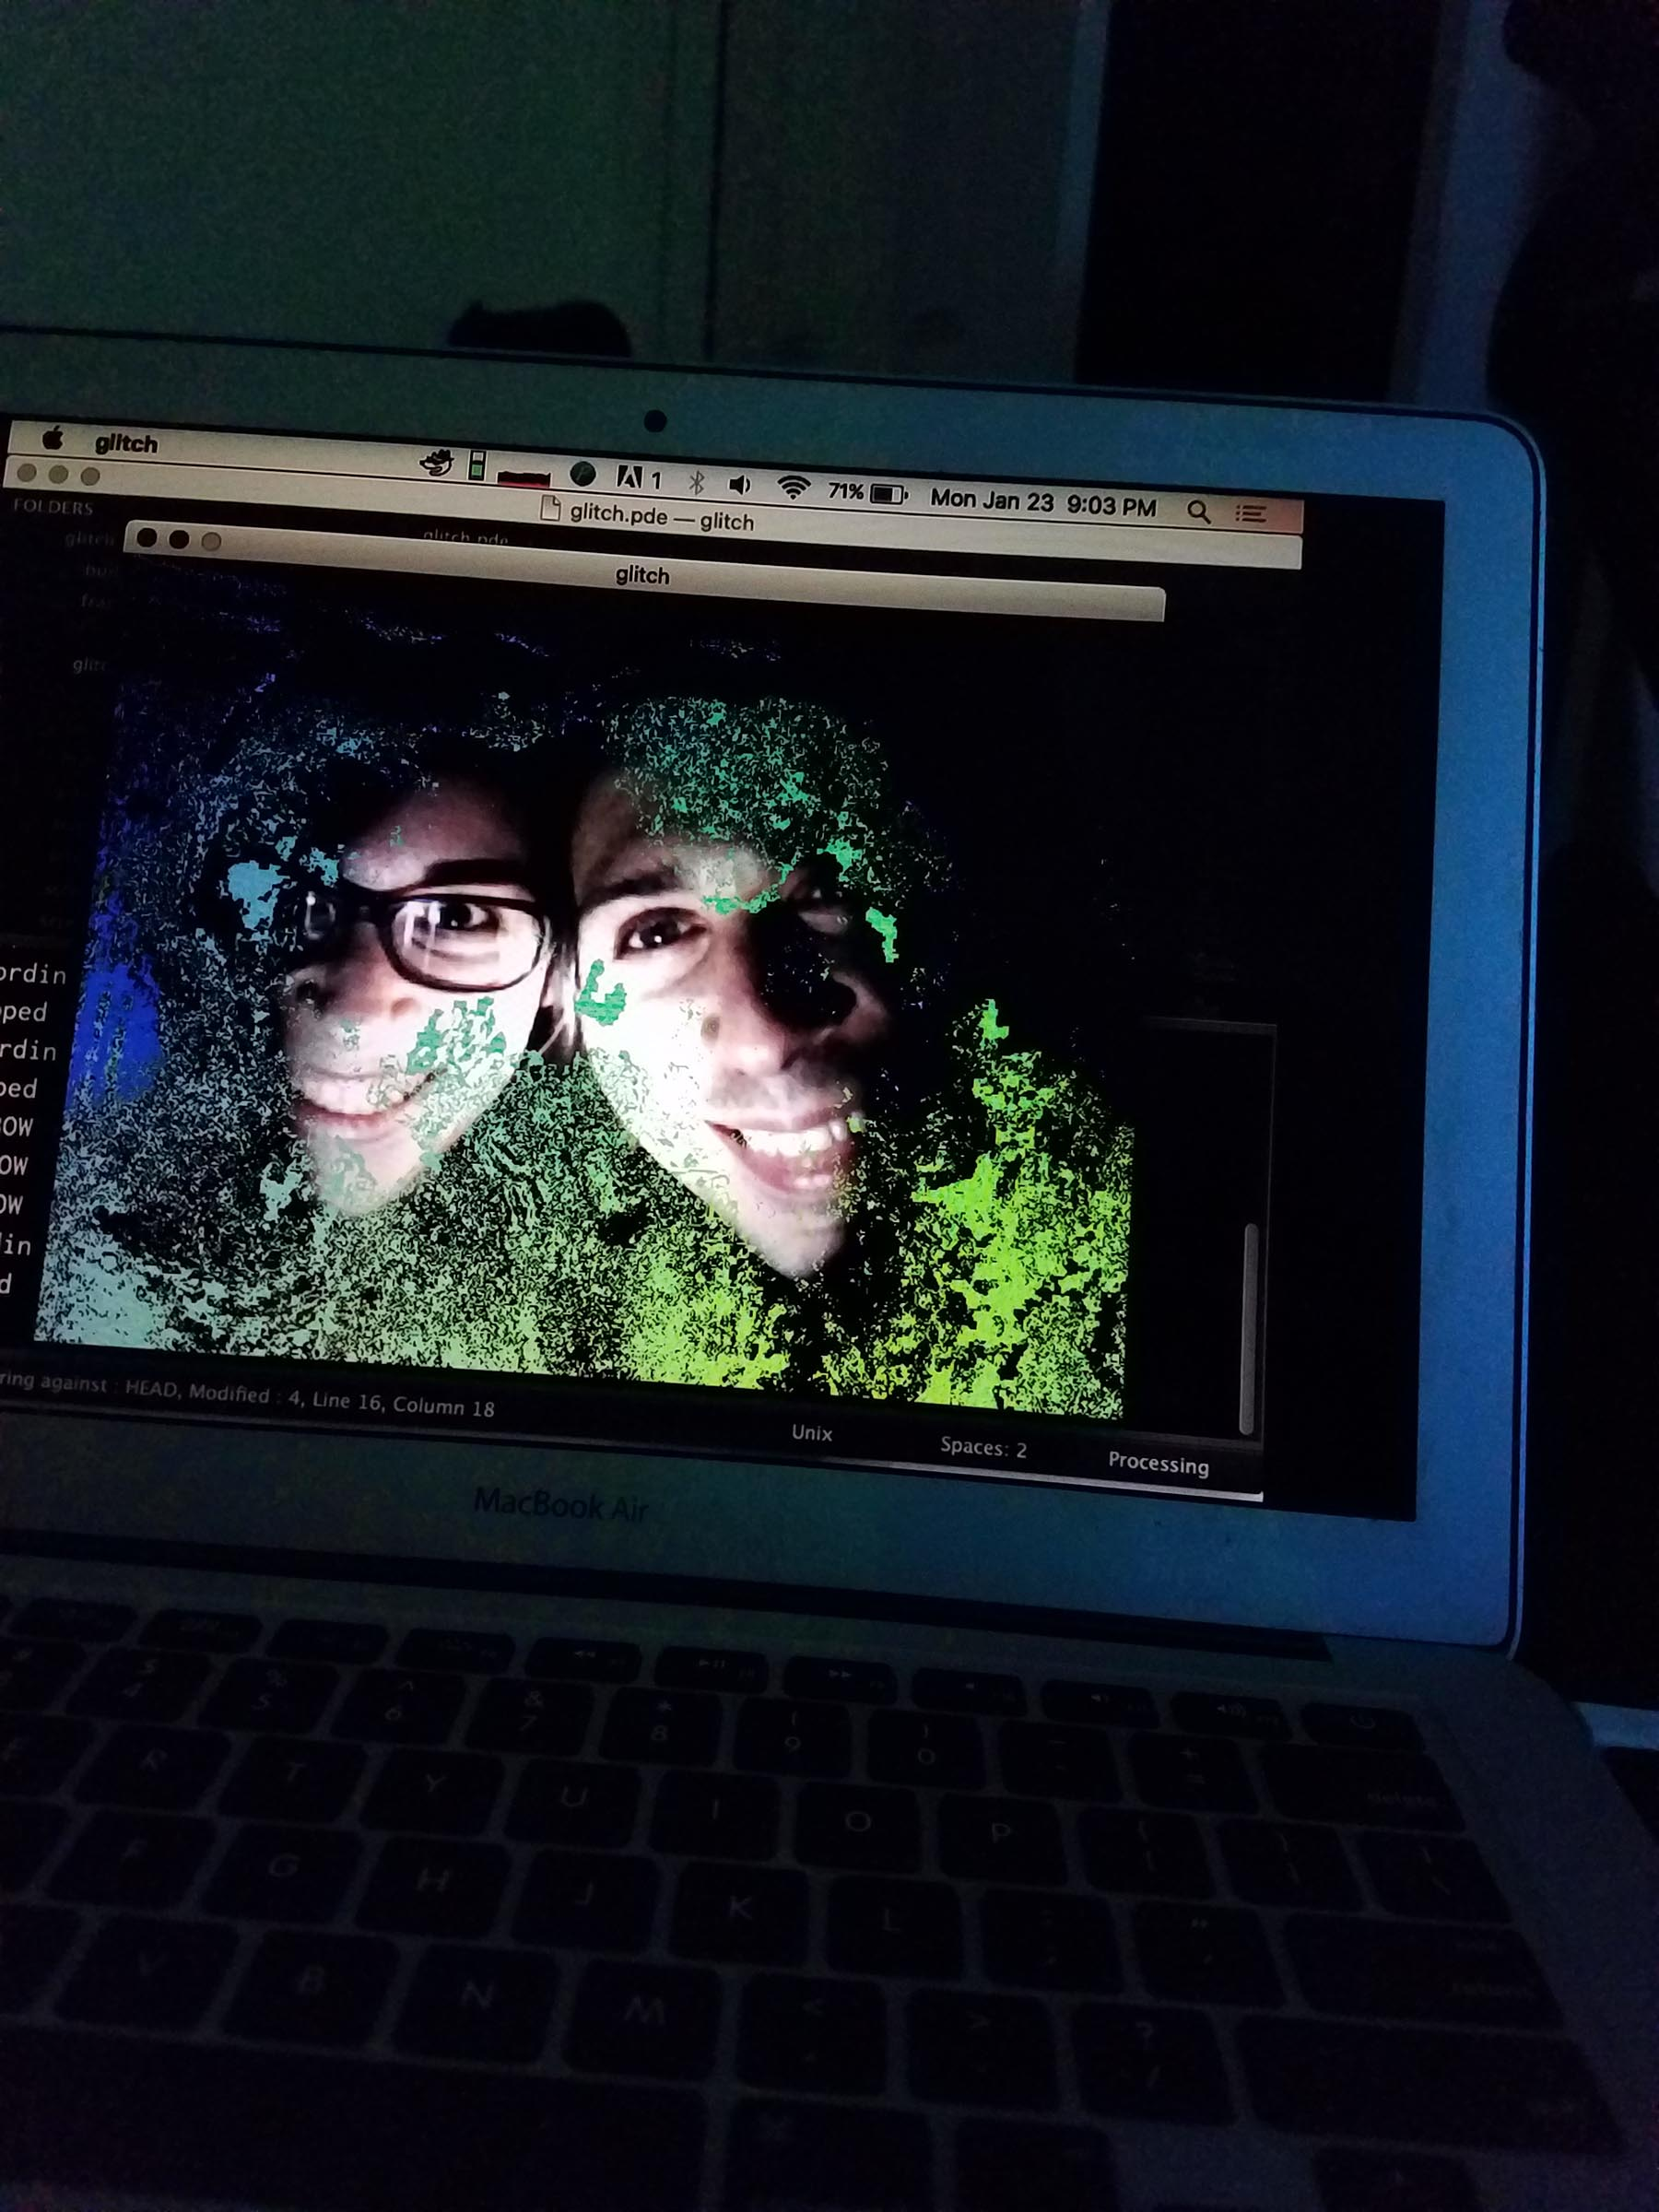 Photo of a laptop screen that displays close-up images of two people. They are smiling, lit from below by a light in an otherwise dark room, and the picture is slightly garbled by green visual noise.